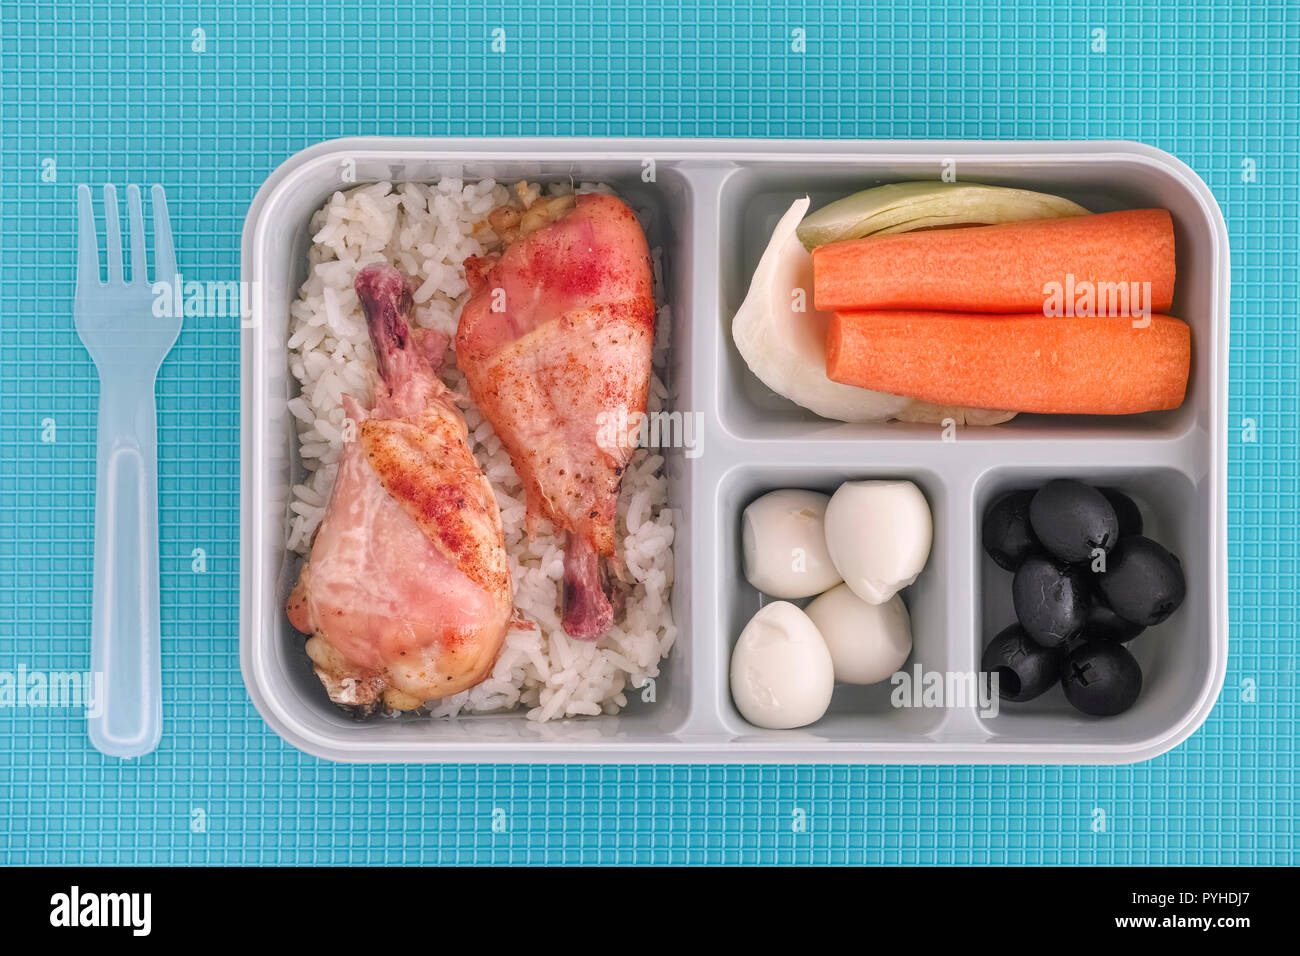 Lunch box with rice and chicken, quail eggs, black olives and vegetables. Top view. Natural lighting. Close up. - Stock Image